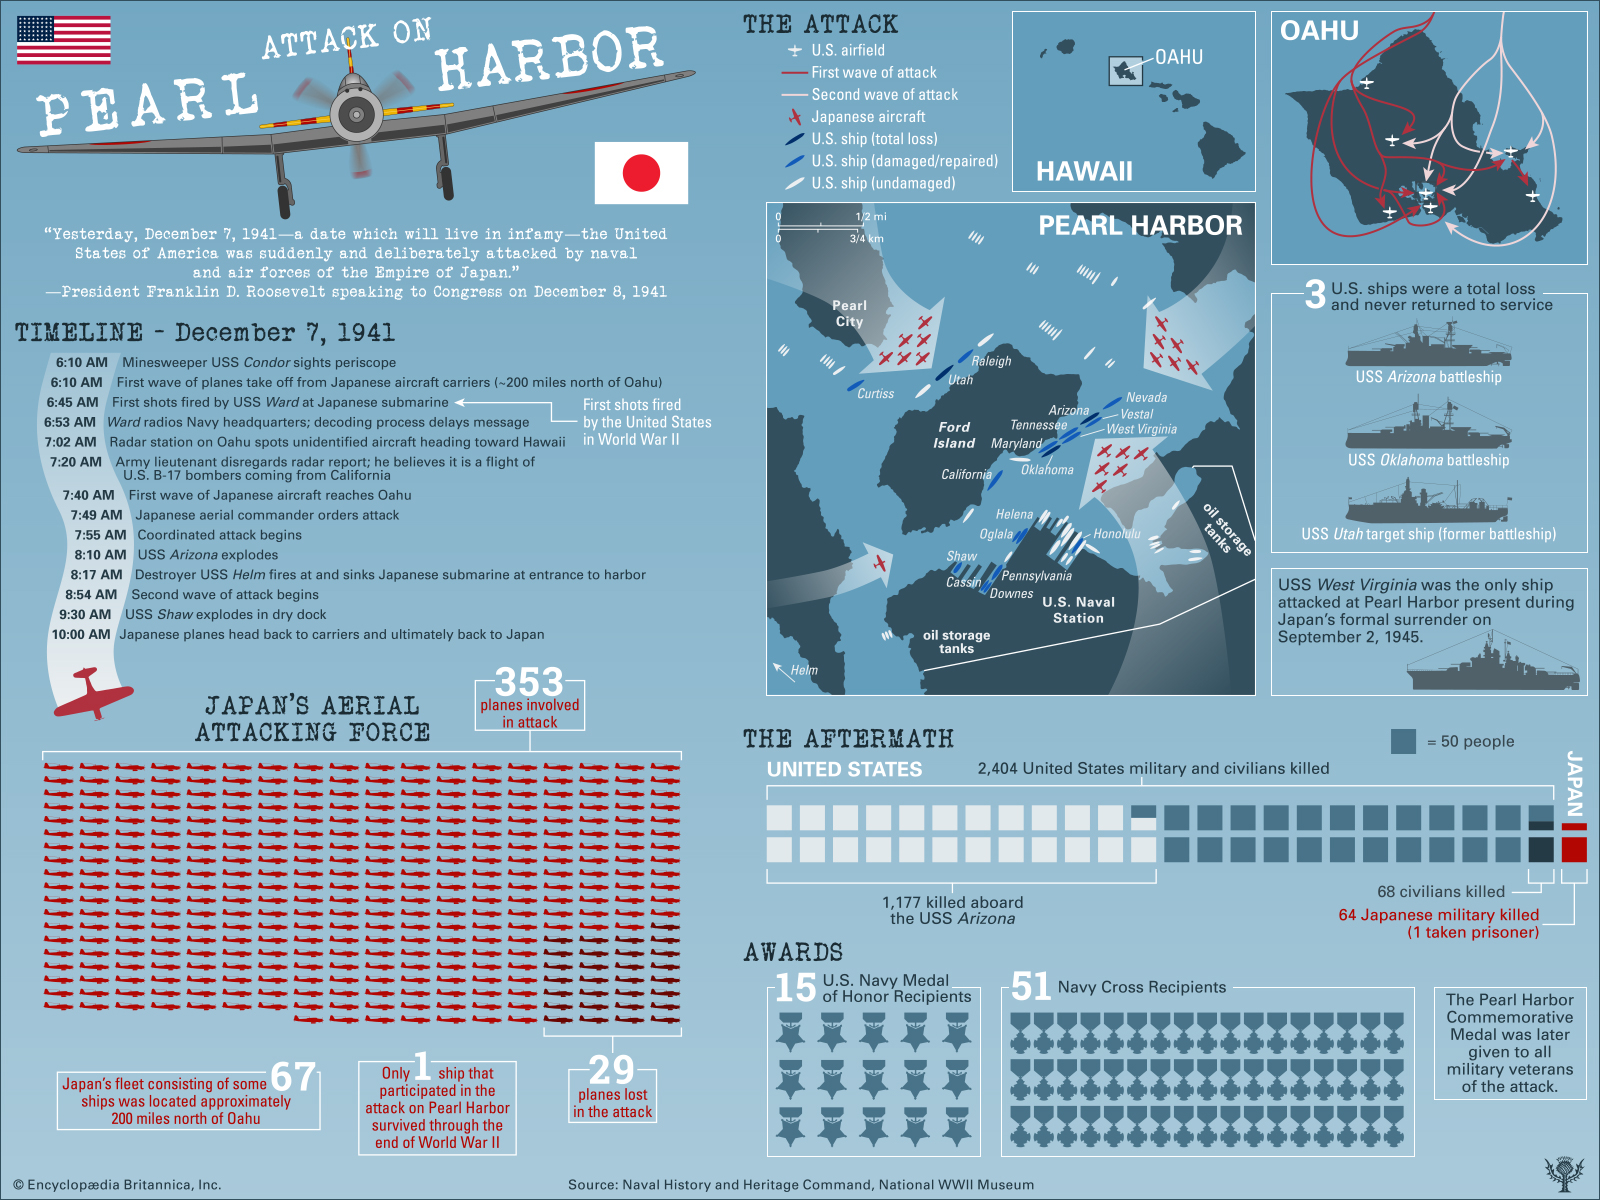 pearl harbor and september attacks essay Similarities and differences between the attack on pearl harbor and the disaster day 9/11 comparing the two events  many people died in the historic attacks and the attacks were deadly pearl harbor and the 9/11 attacks were left in history for everyone to remember 9/11 pearl harbor.